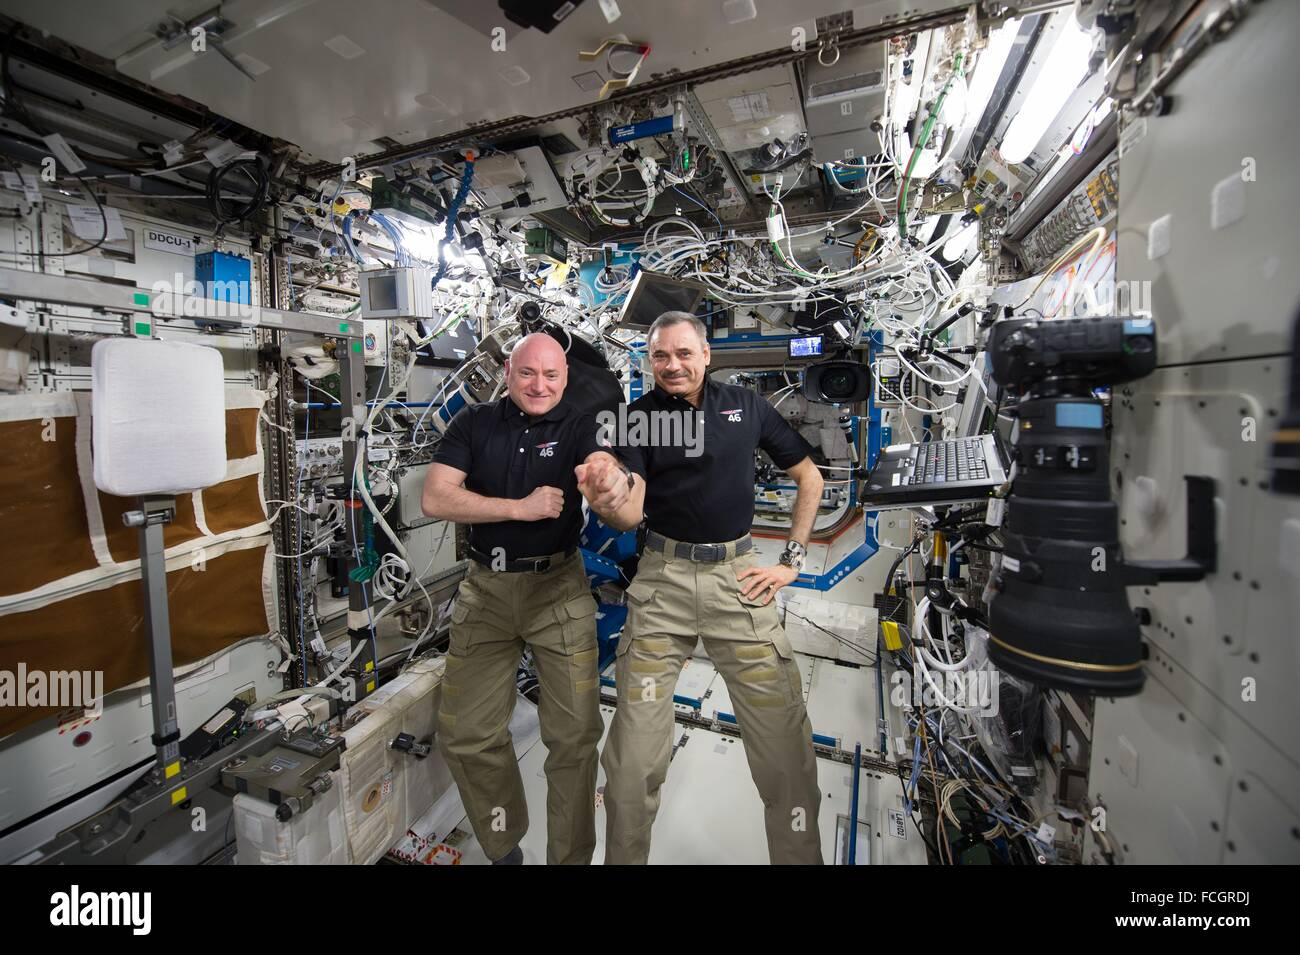 International Space Station. 21st January, 2016. The Expedition 45 crew members NASA astronaut Scott Kelly (left) - Stock Image